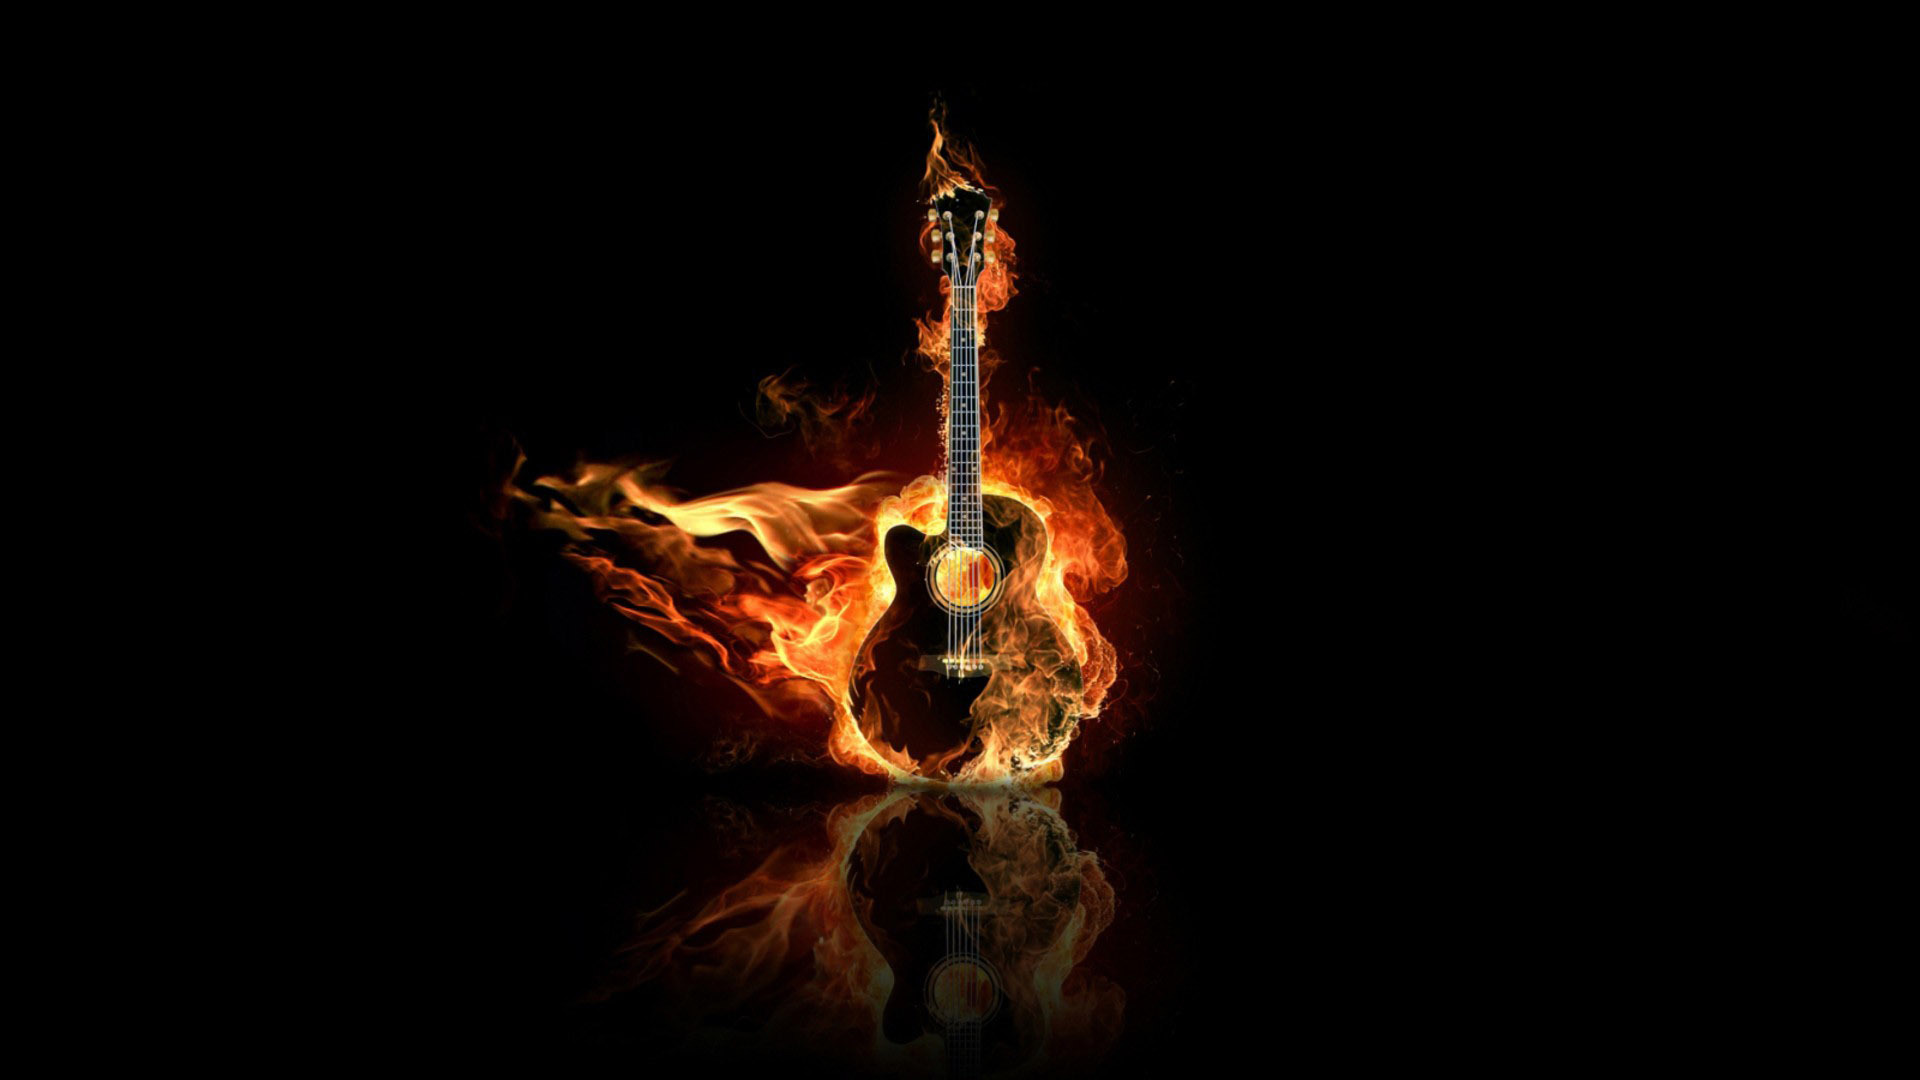 Guitar Wallpaper 110 1920x1080 Pixel Wallpaperpass